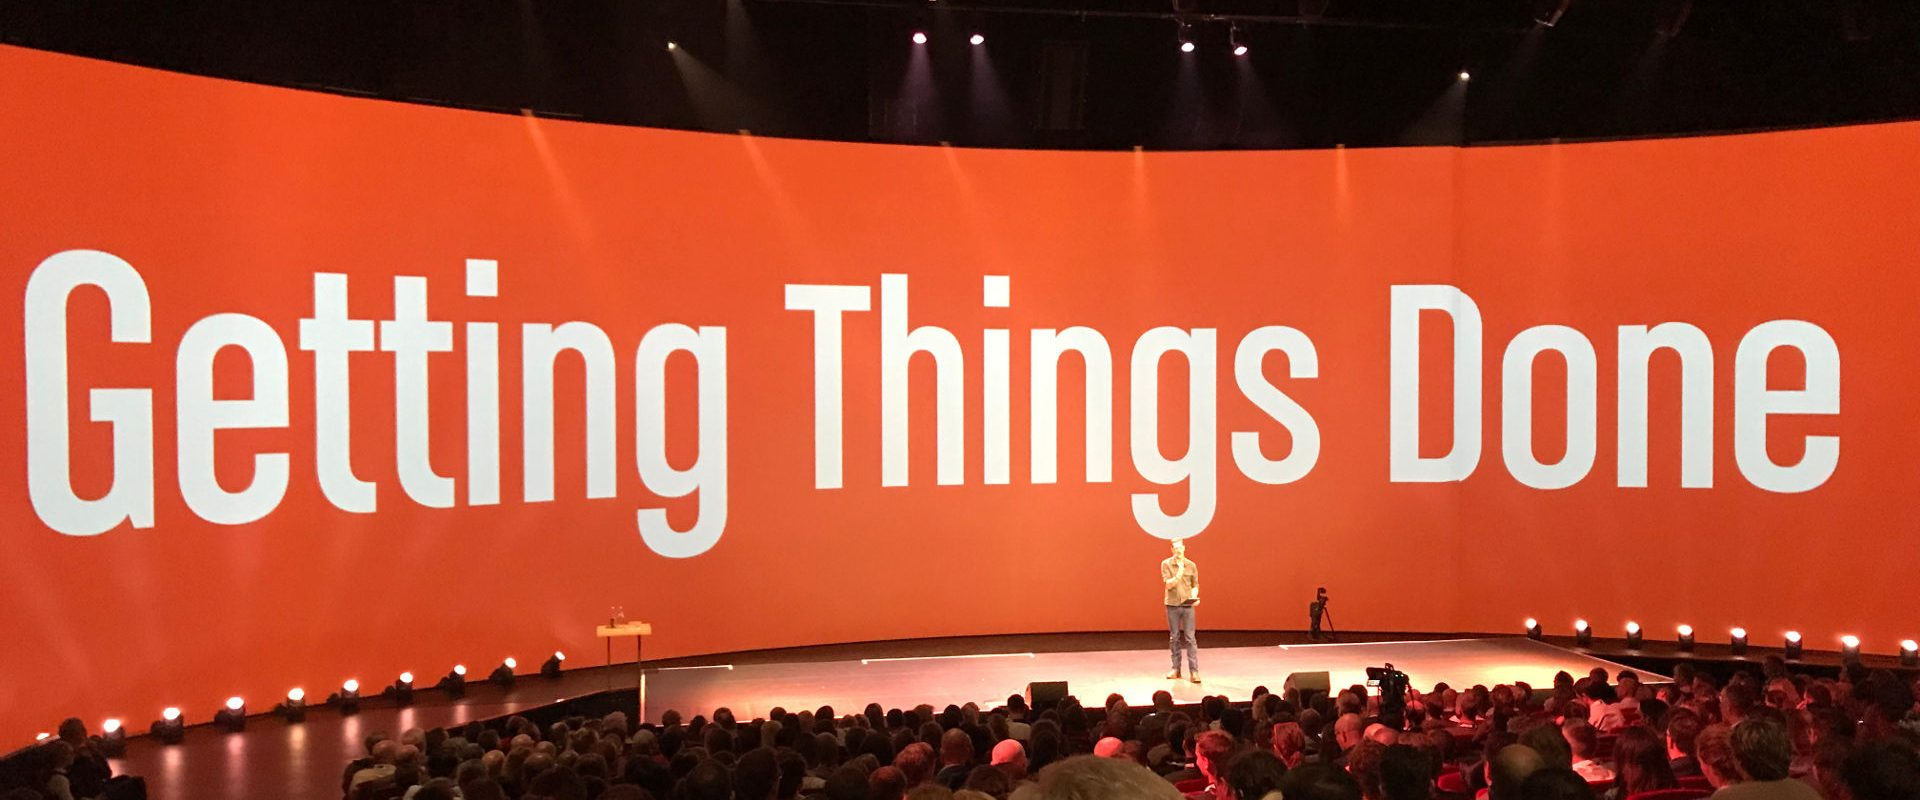 "Stage with ""Getting Things Done"" printed on the main screen"